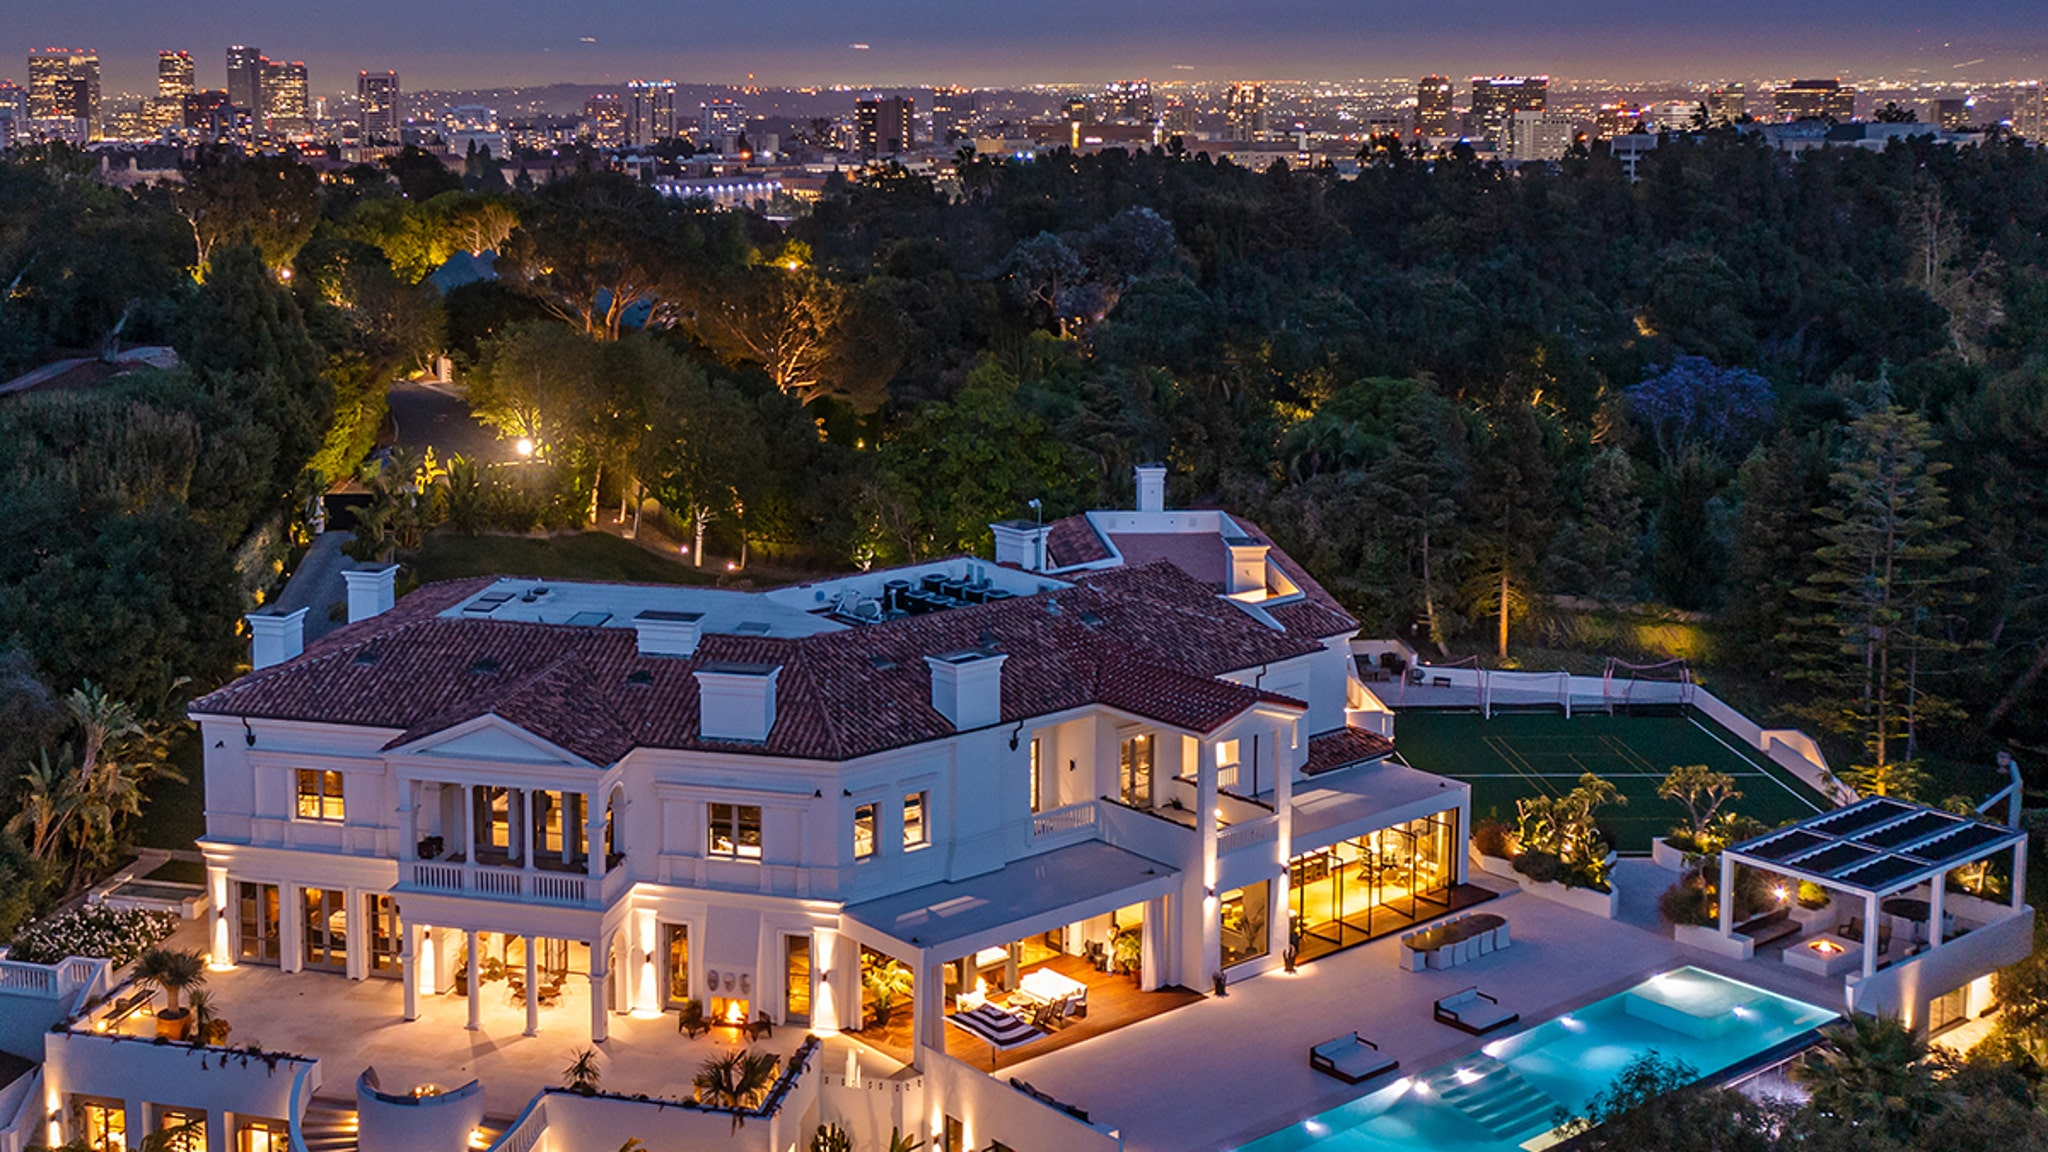 The Weeknd Buys $70 Million Bel Air Estate